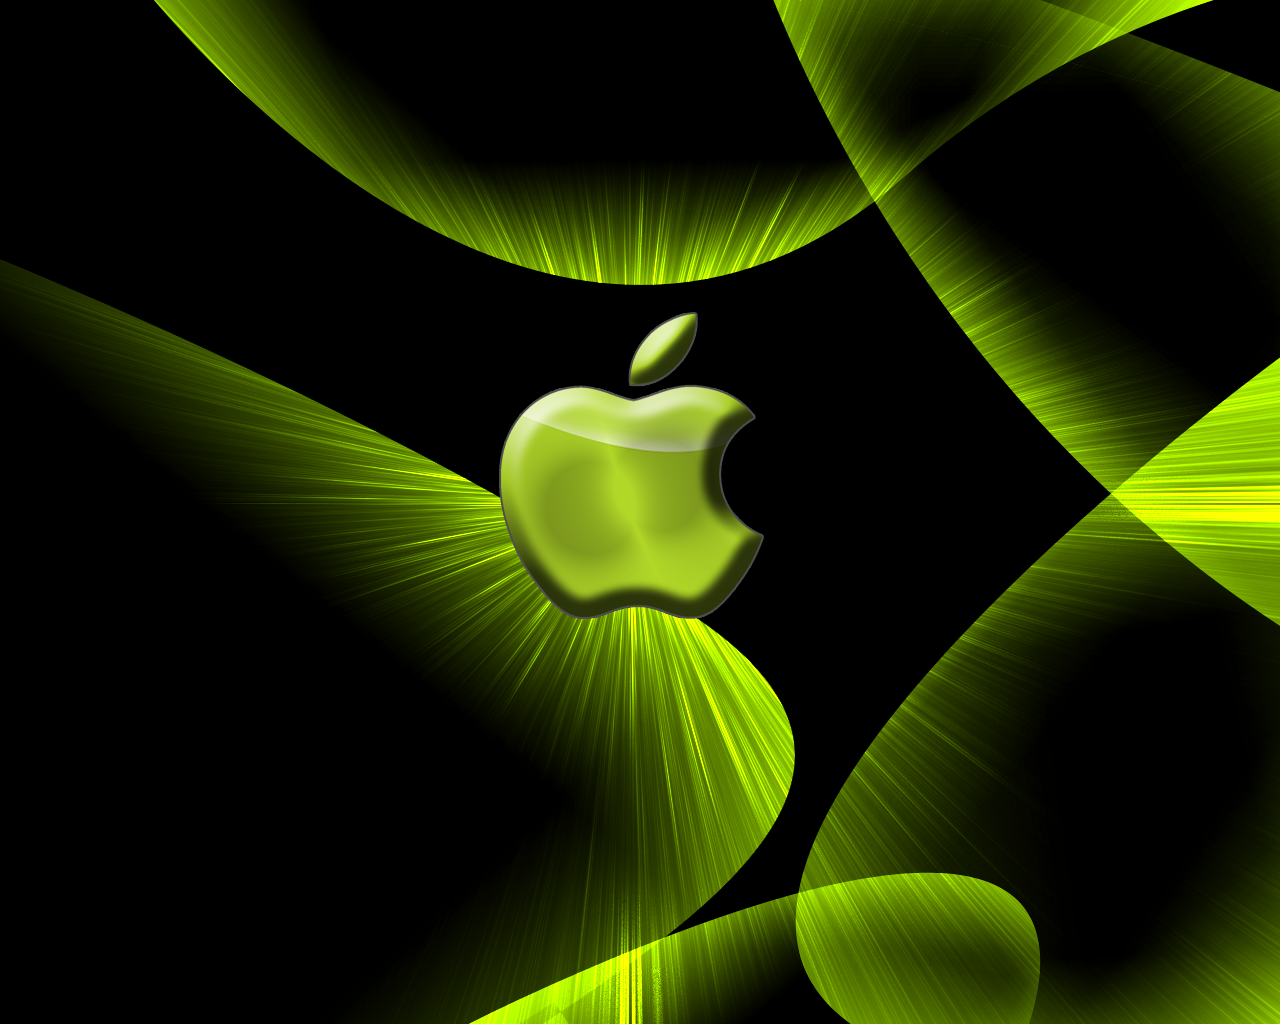 Apple Cool Moving Backgrounds